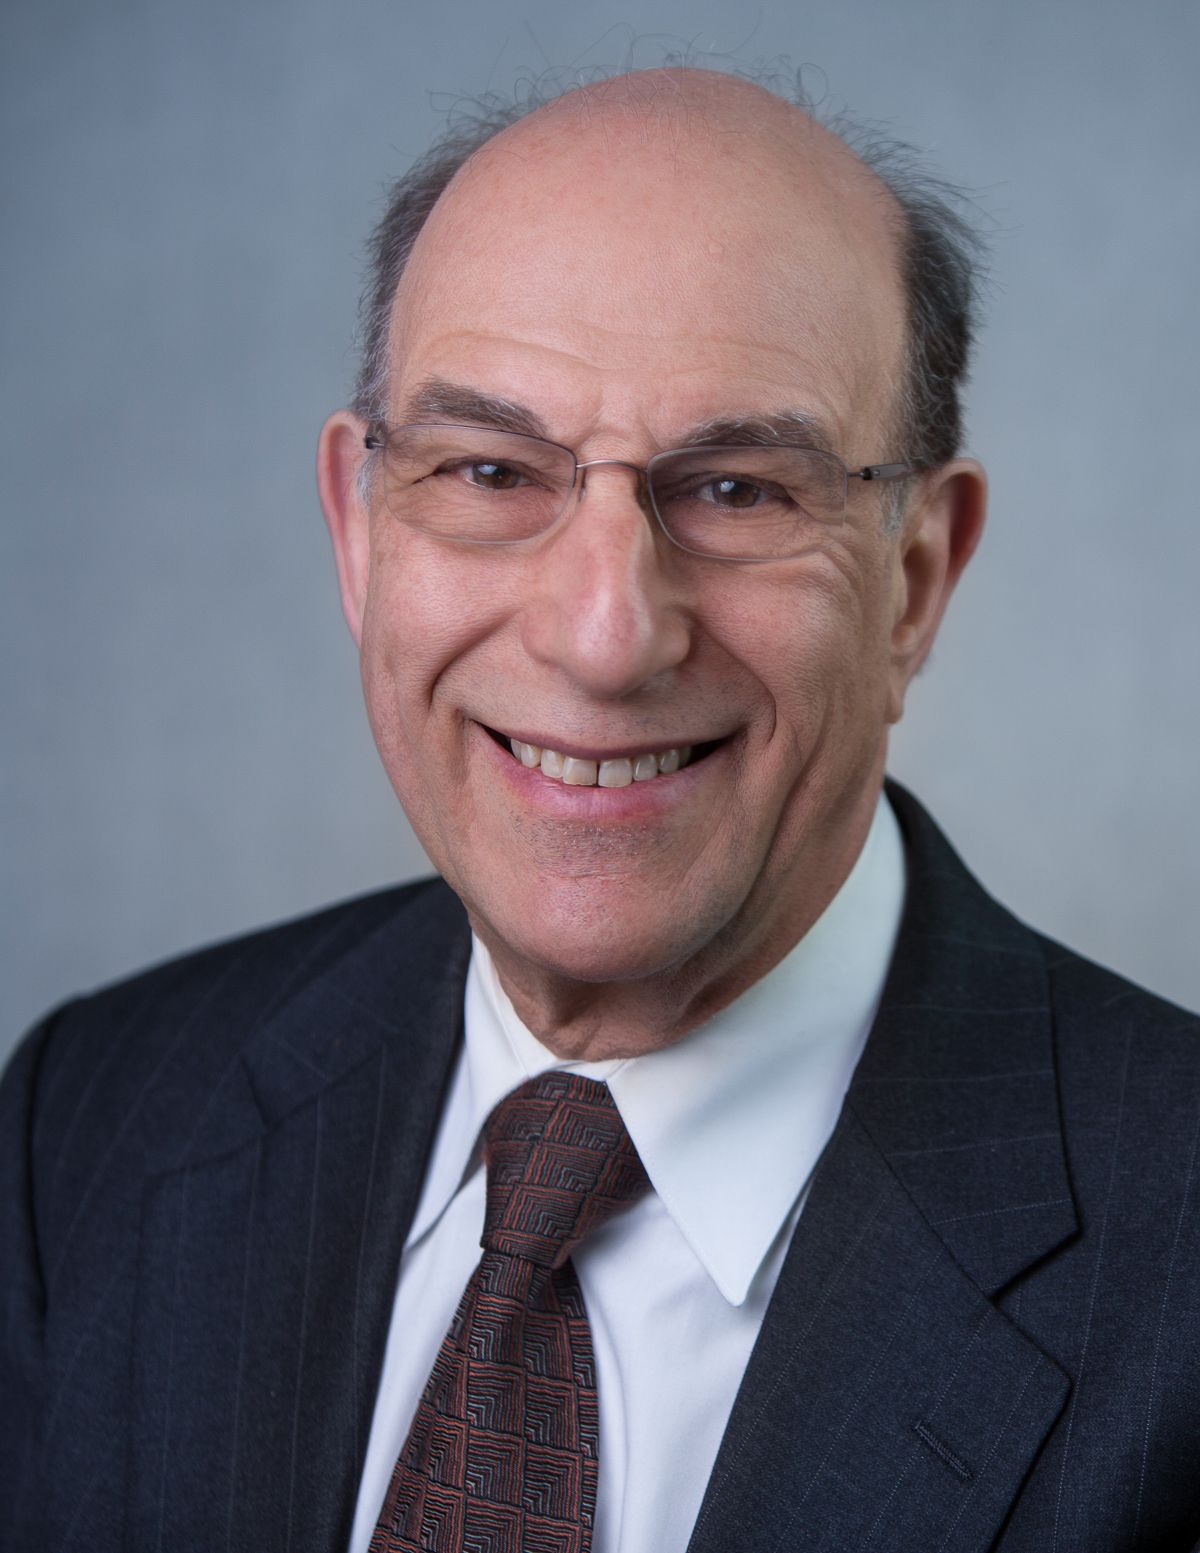 Richard Rothstein